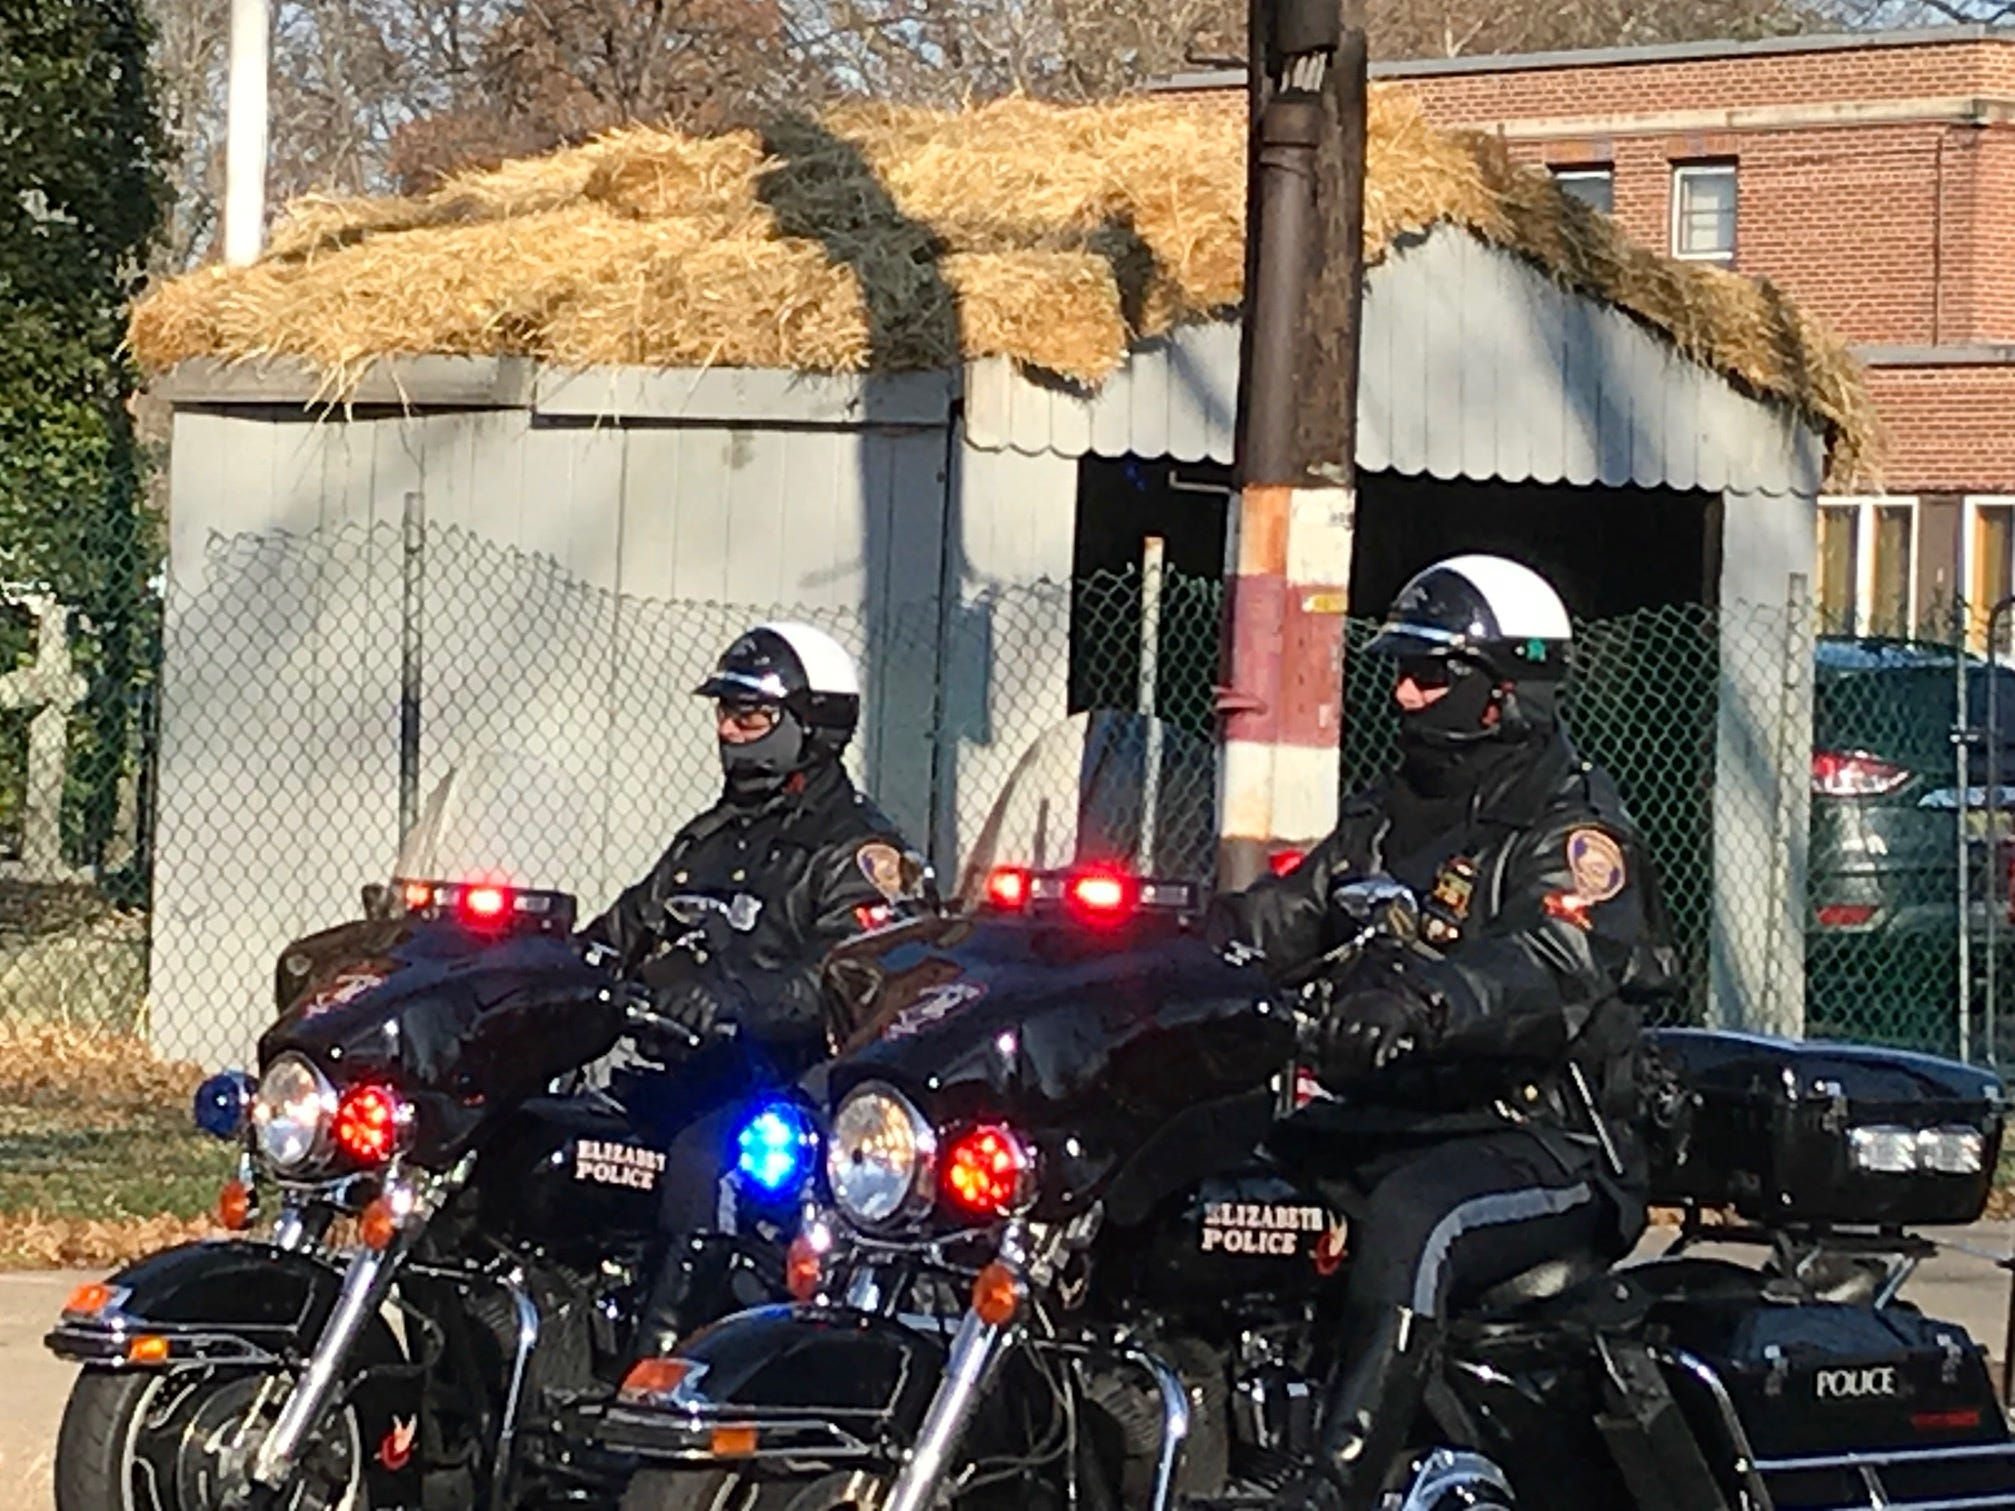 Motorcycle police led the procession to the church for Michael Sot's funeral Monday.